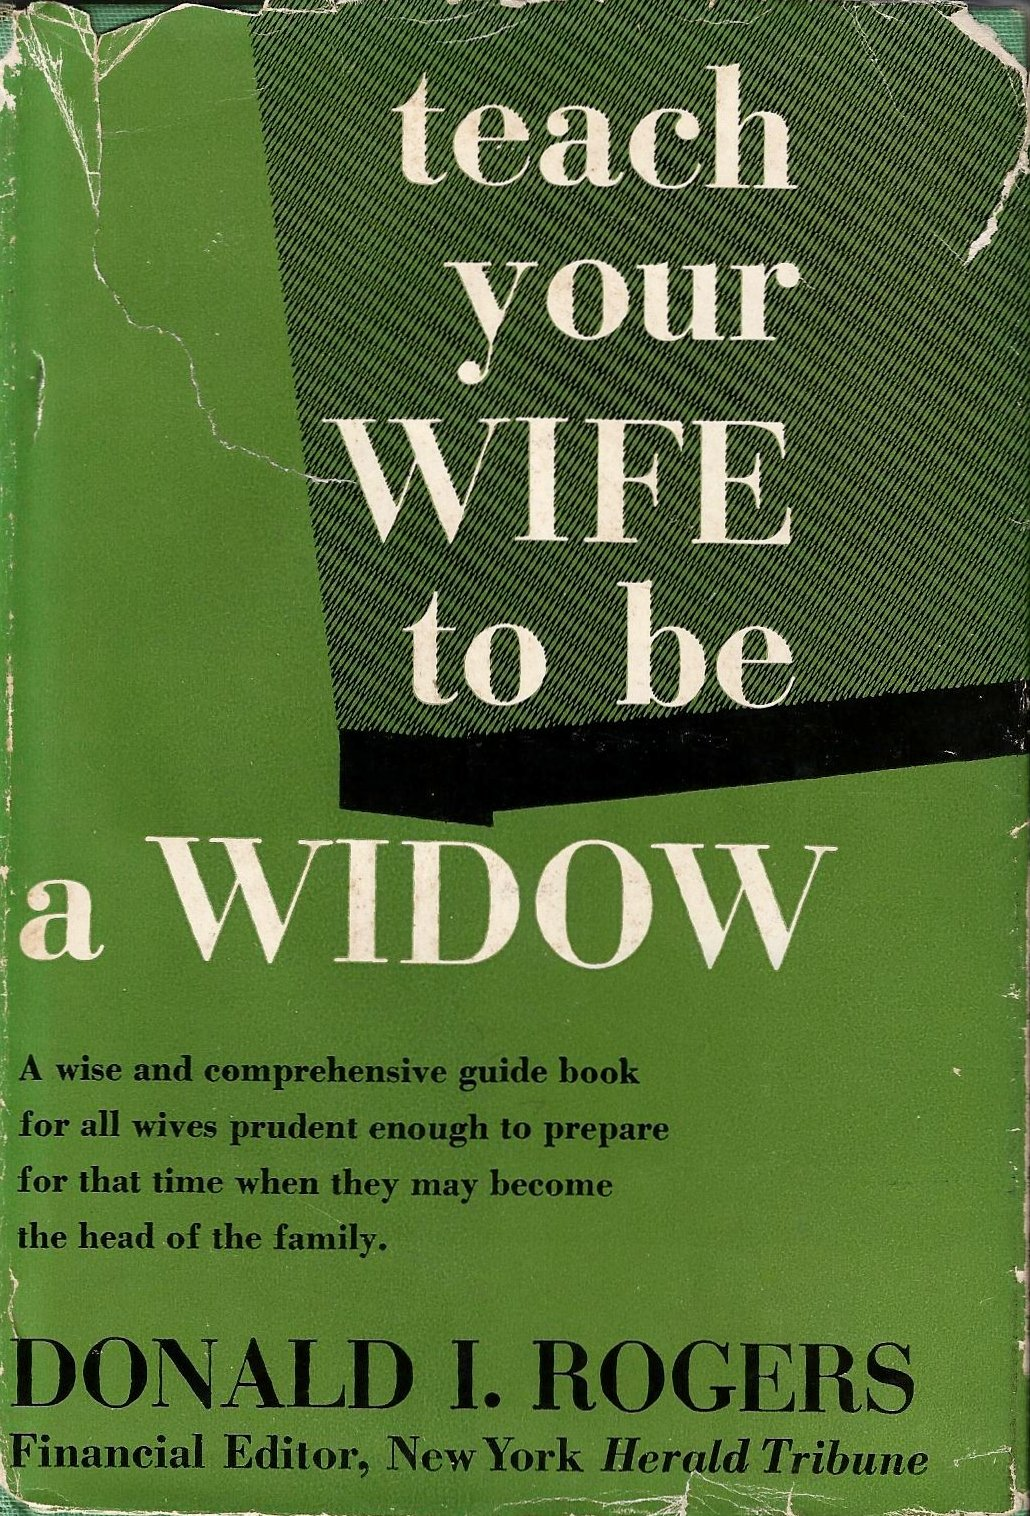 How to be a widow 42